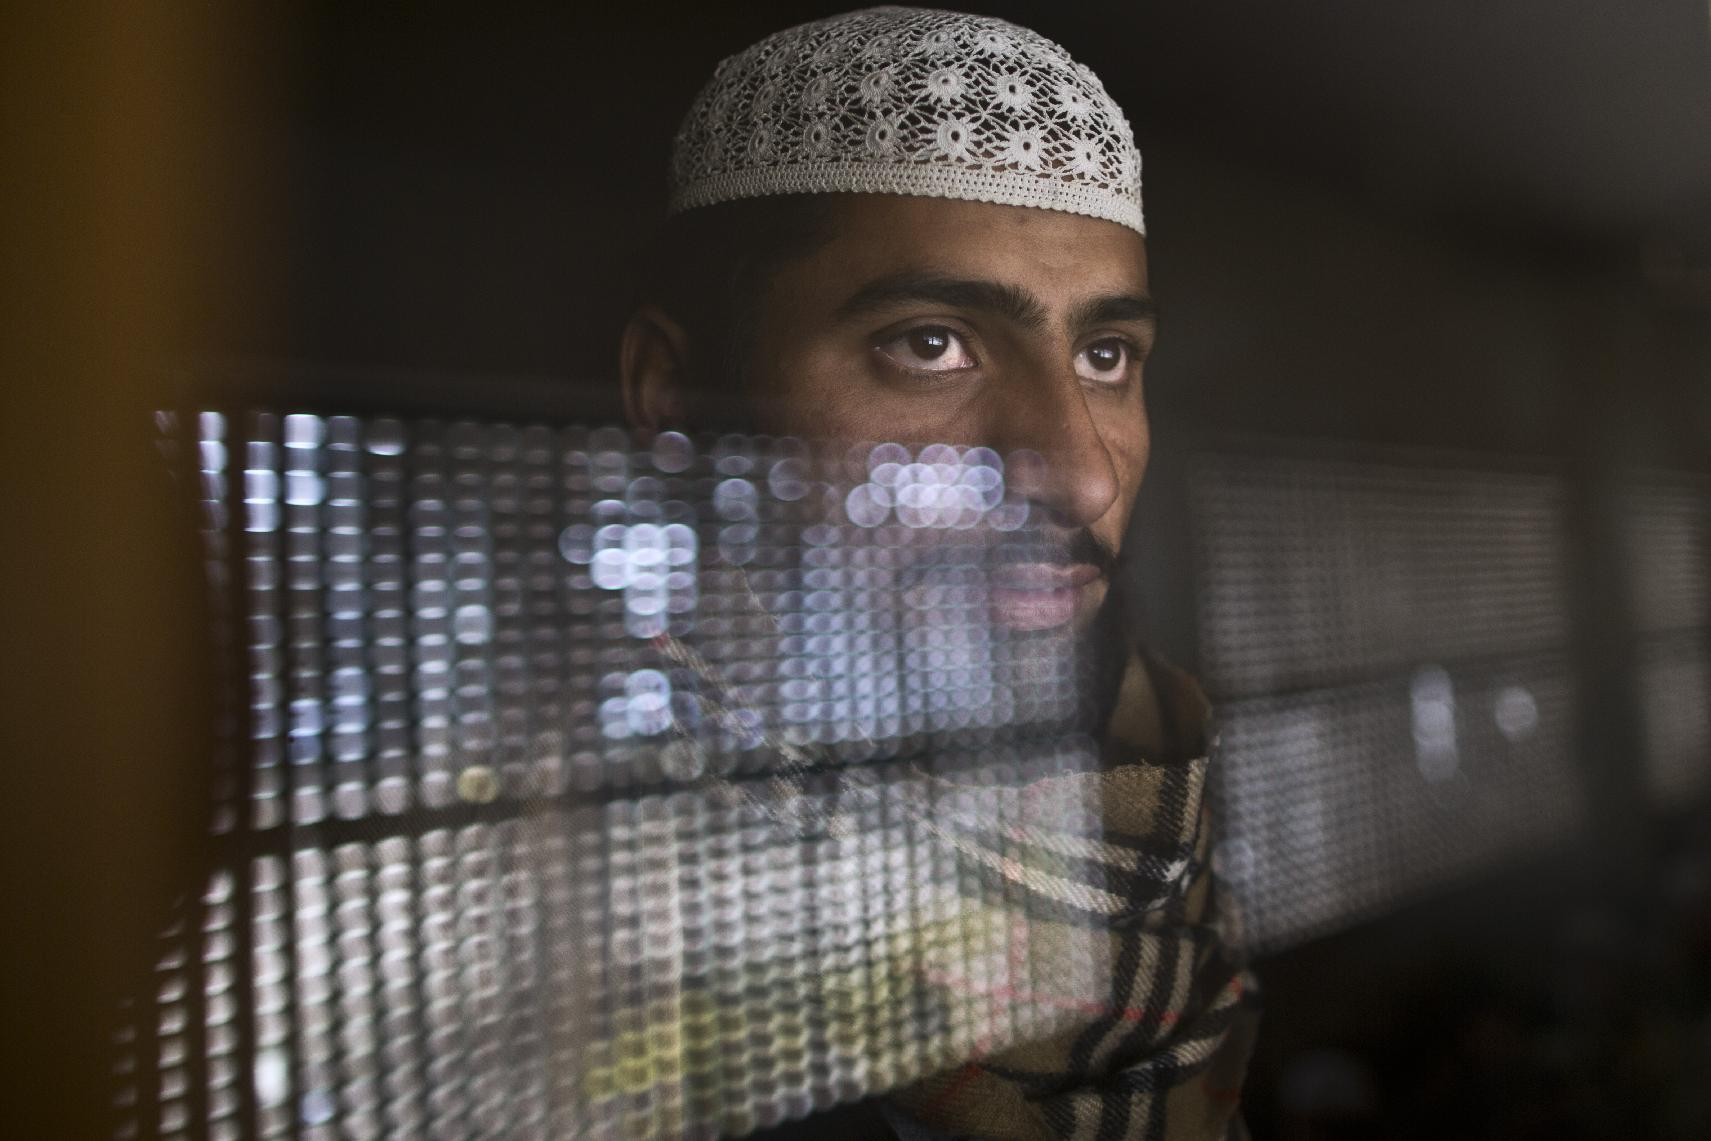 AP PHOTOS: Pakistan religious schools in spotlight